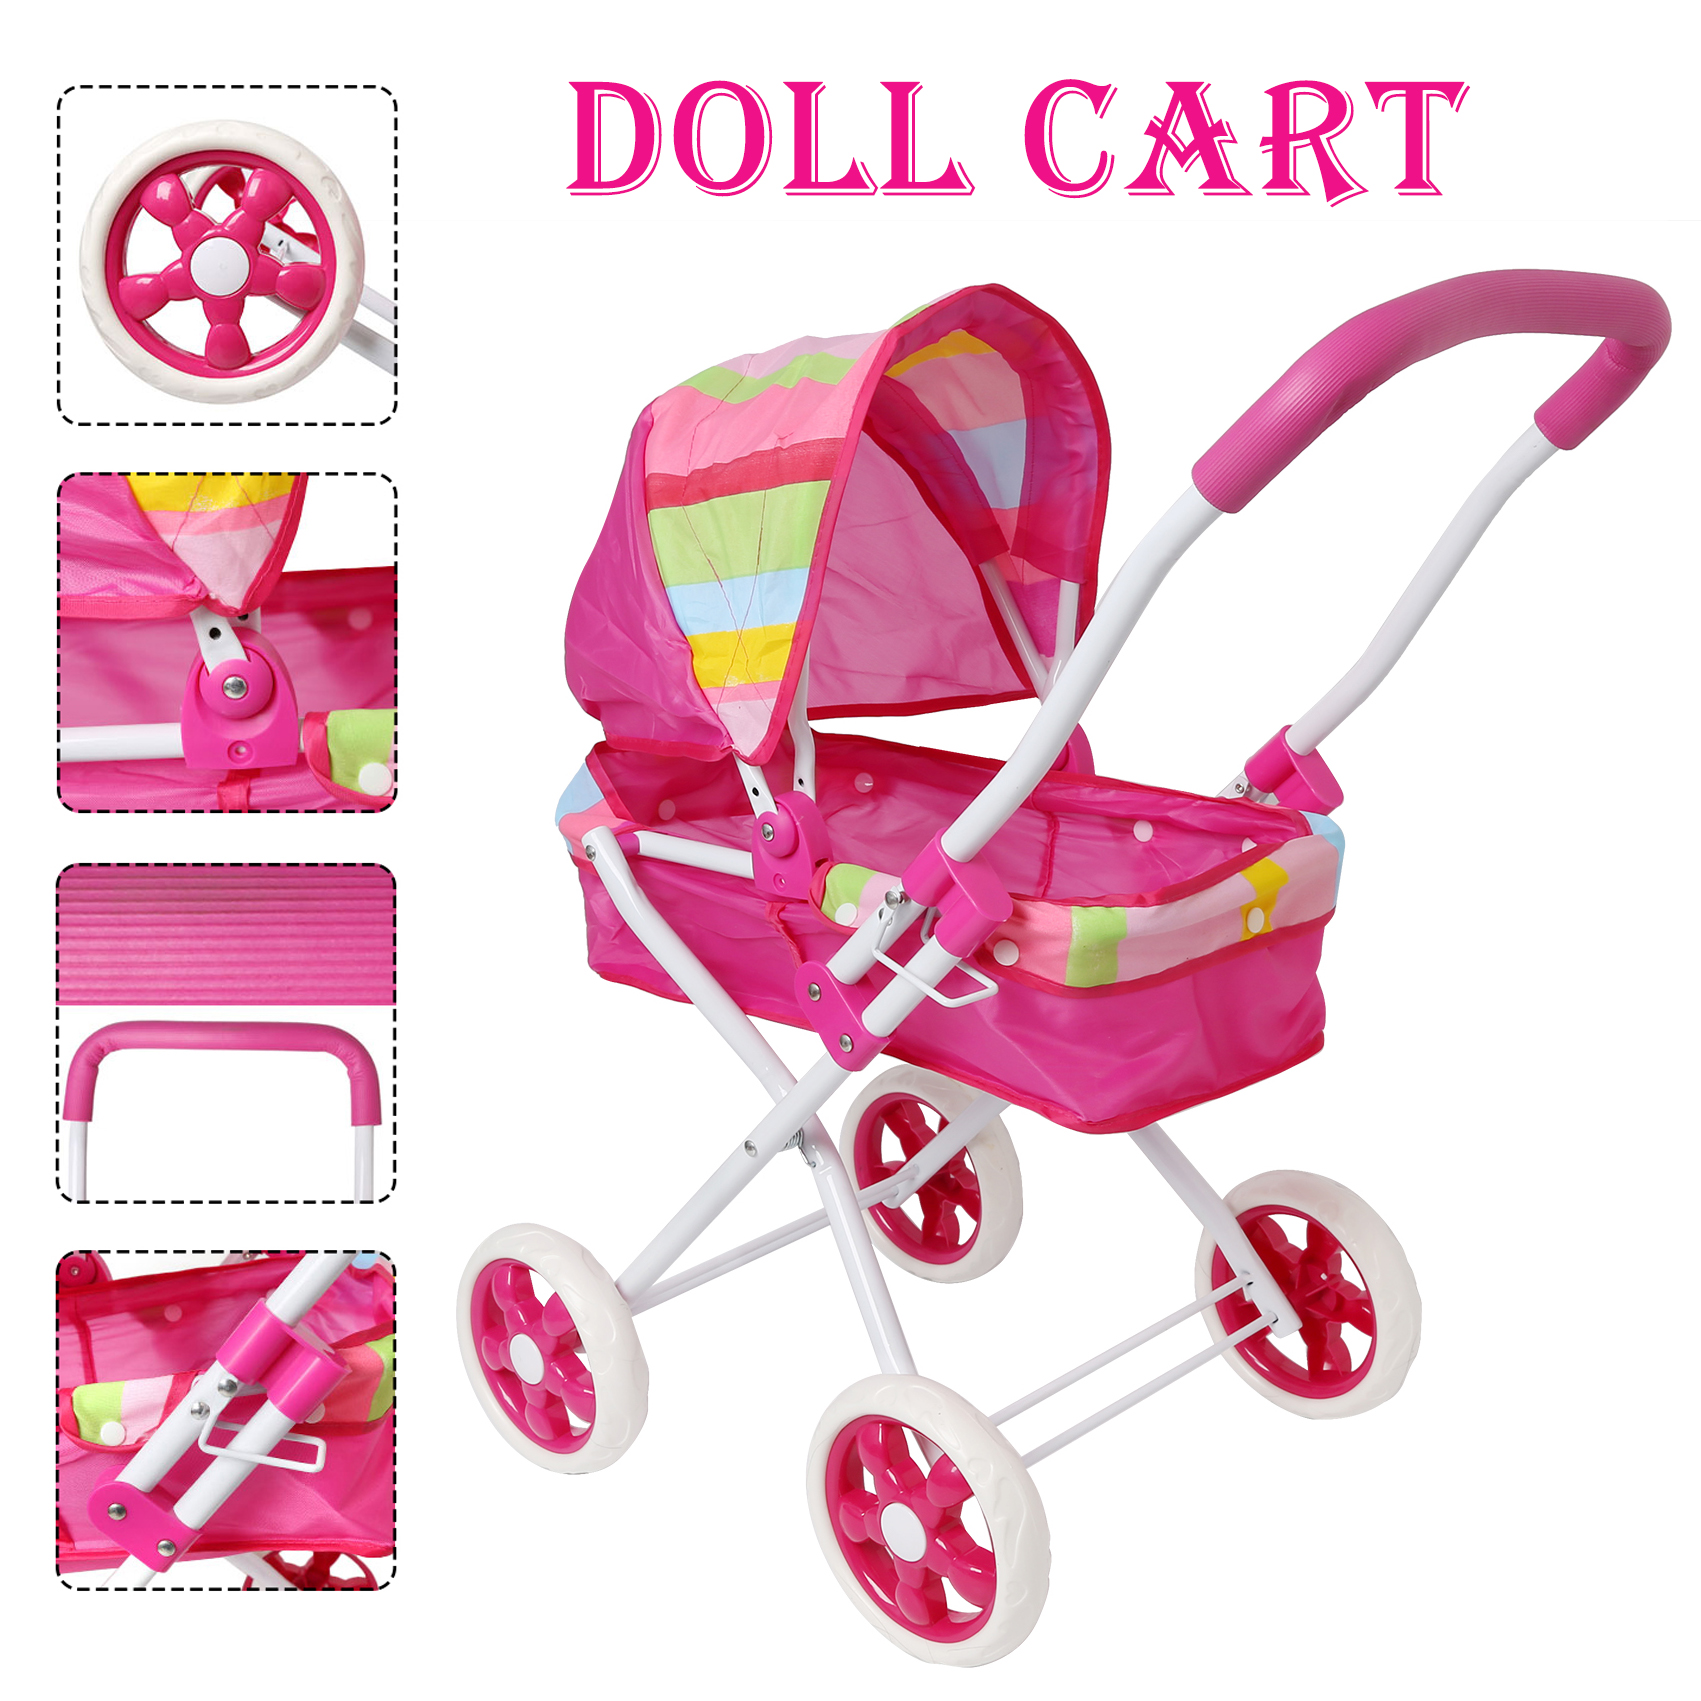 Furniture Toys Pink My First Doll Stroller Foldable Stroller for Doll with Swivel Wheels and Hood Pretended Play Toy for KidFurniture Toys Pink My First Doll Stroller Foldable Stroller for Doll with Swivel Wheels and Hood Pretended Play Toy for Kid